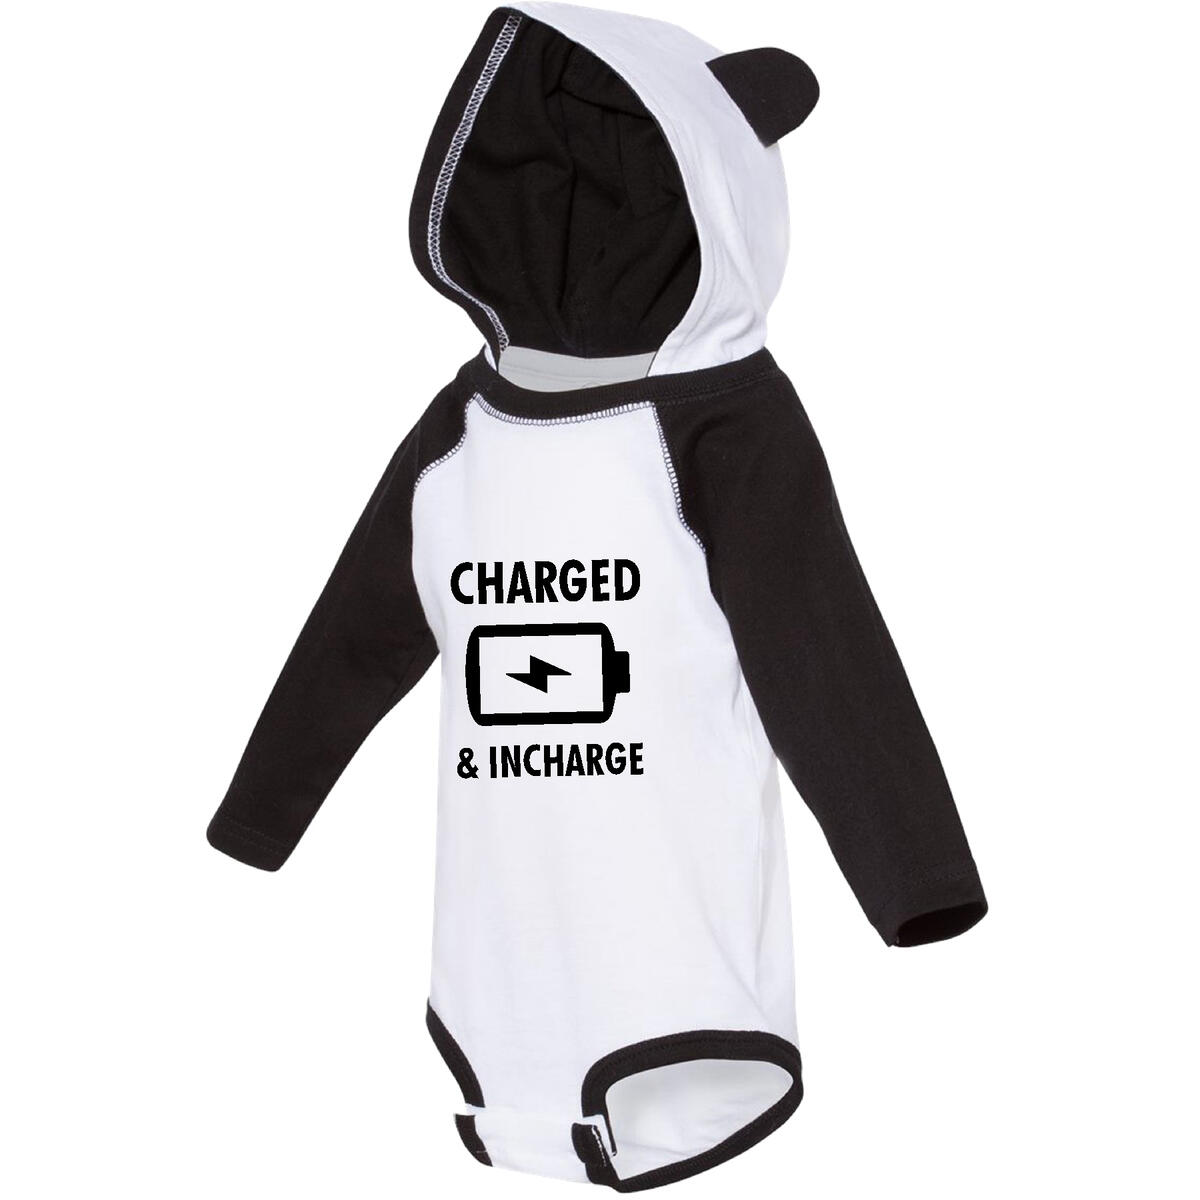 GuyosApparel Funny Baby Bodysuit with Ears Charged and in-Charge Baby Cute